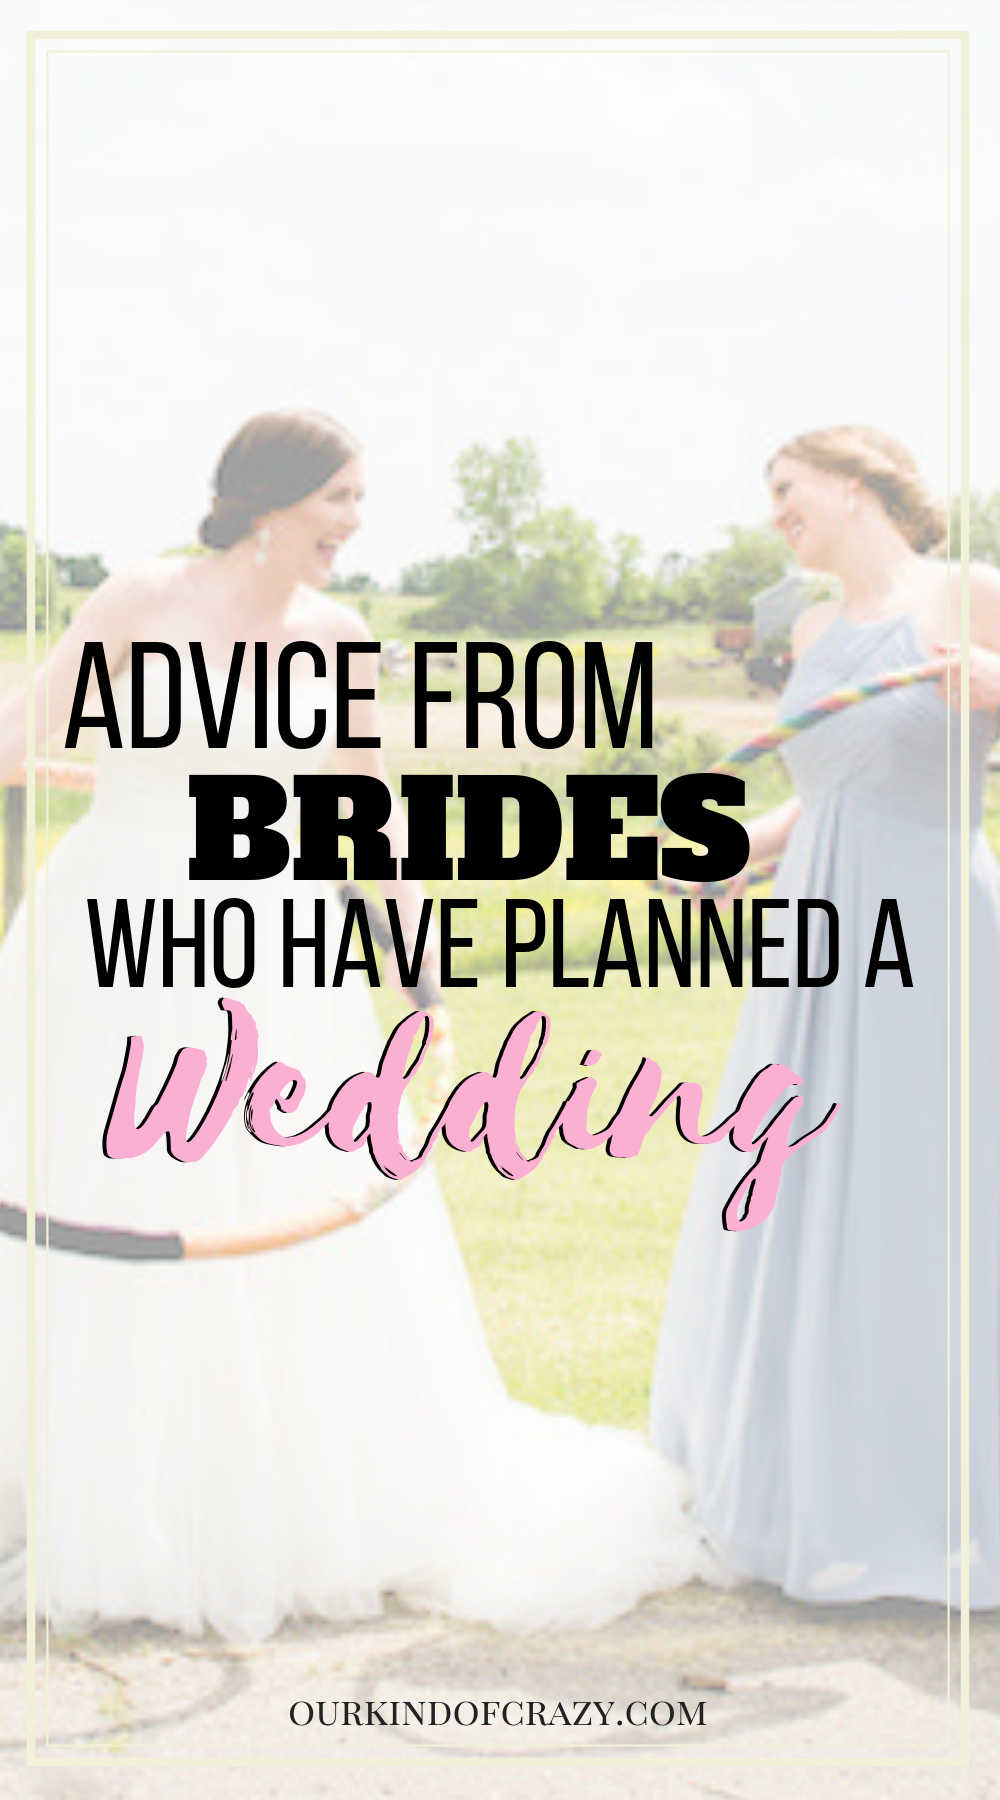 Wedding Planning Advice from Brides who have been there. How to have a fun wedding